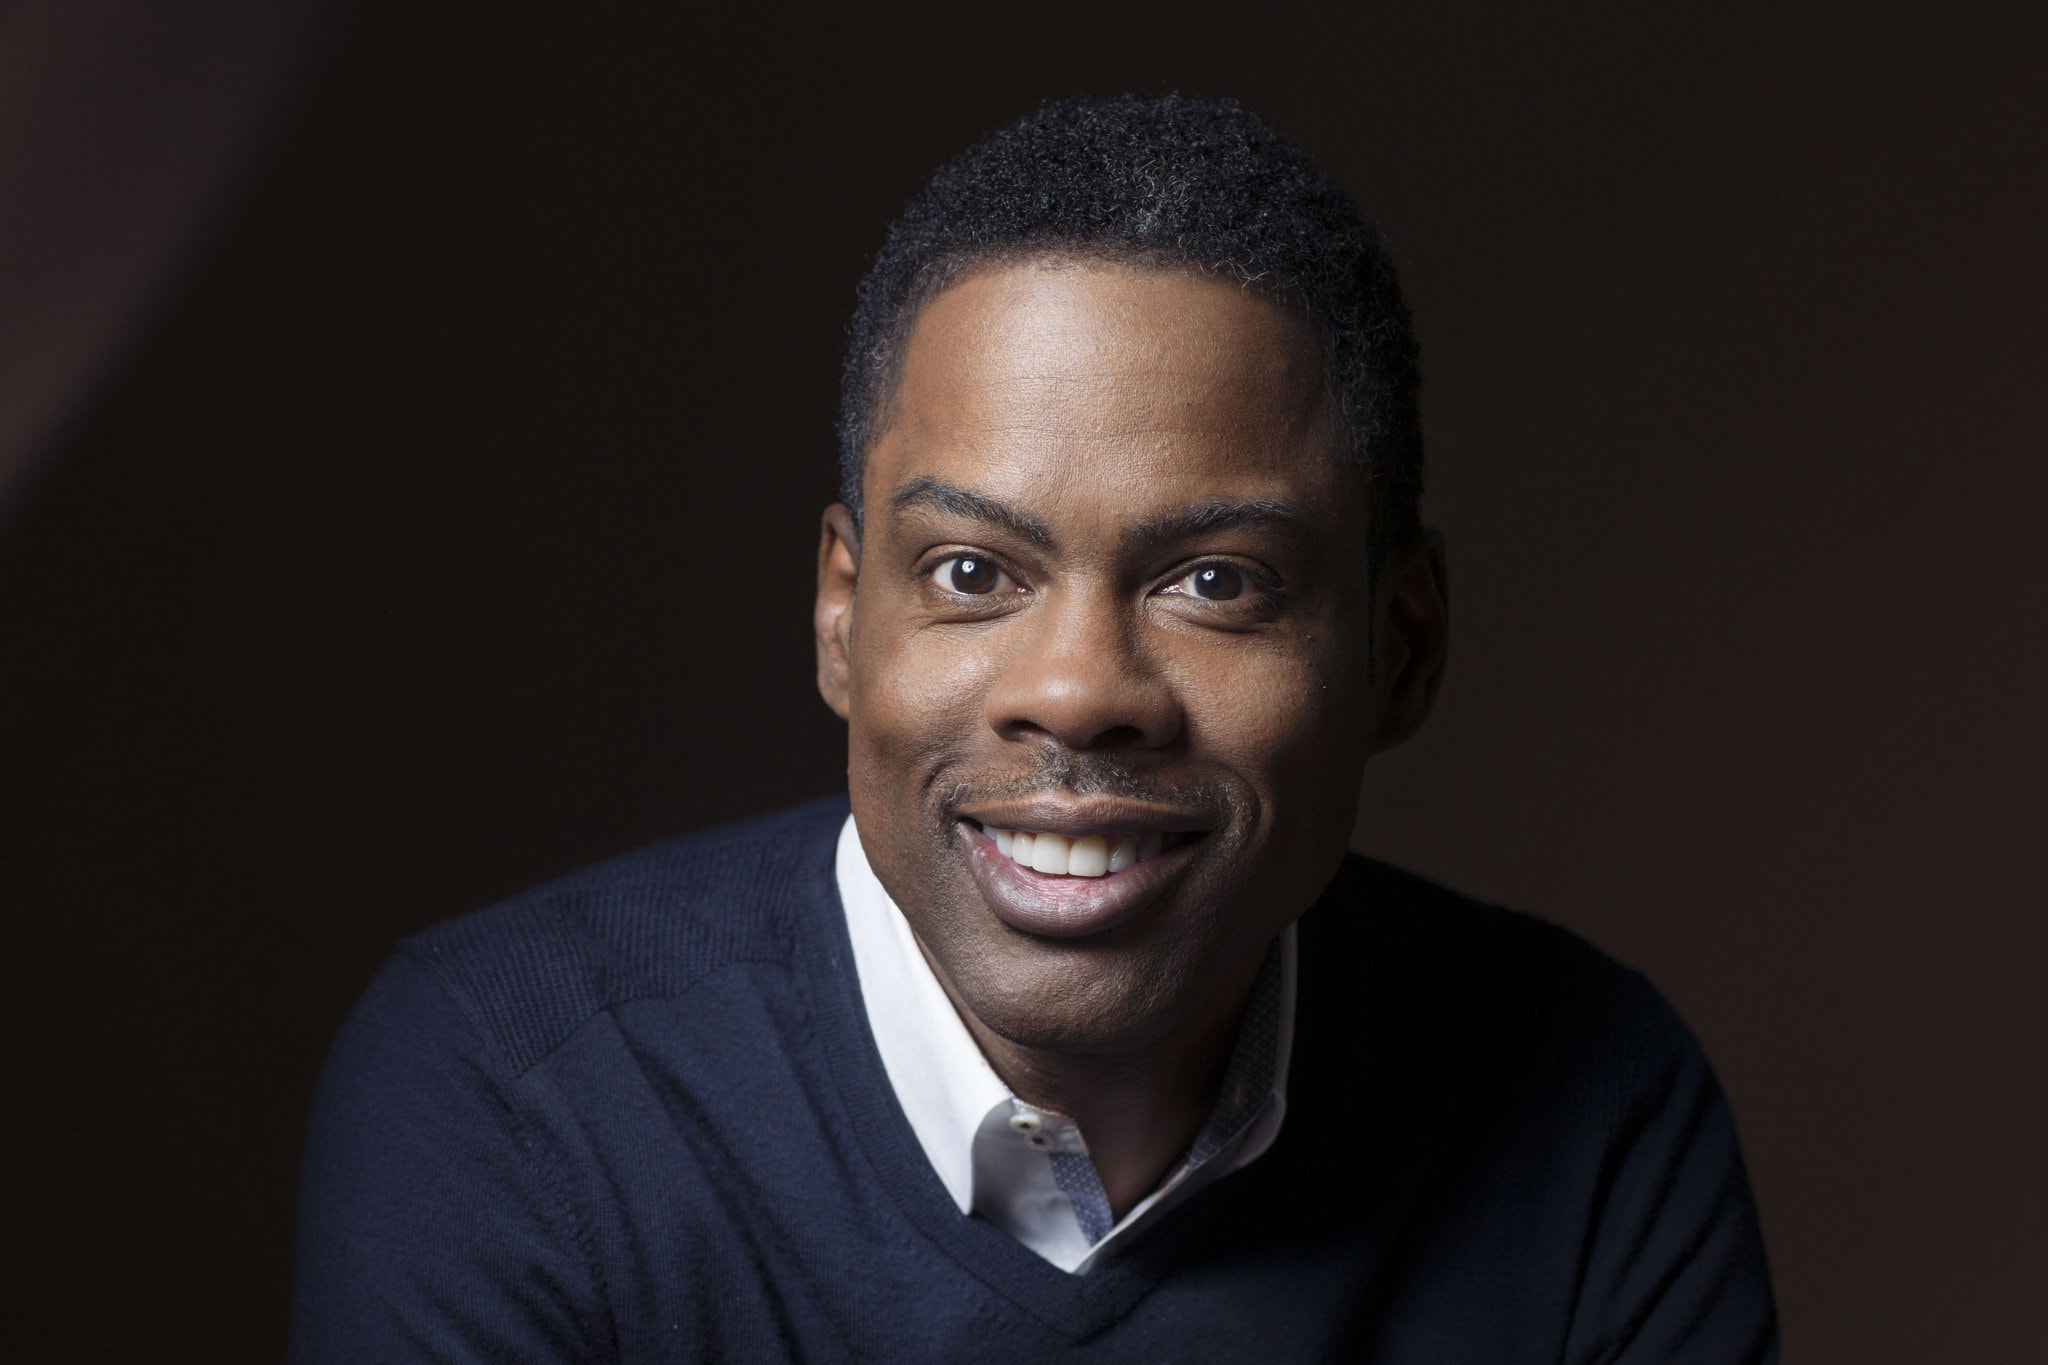 Chris Rock Full hd wallpapers